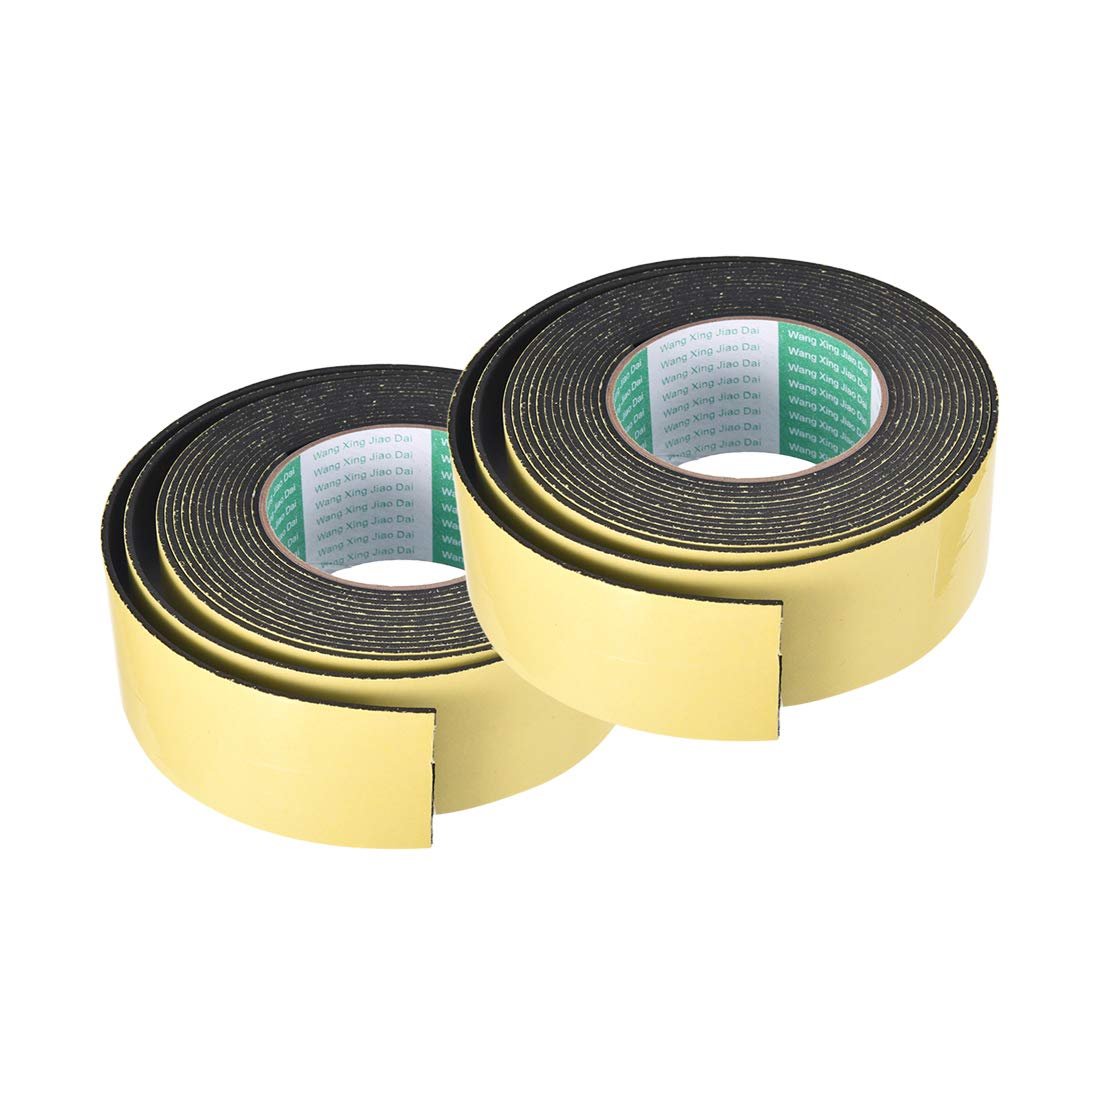 50mm Wide 2mm Thick 16.4 Feet Long Adhesive Weather Strip 2pcs sourcing map Foam Seal Tape